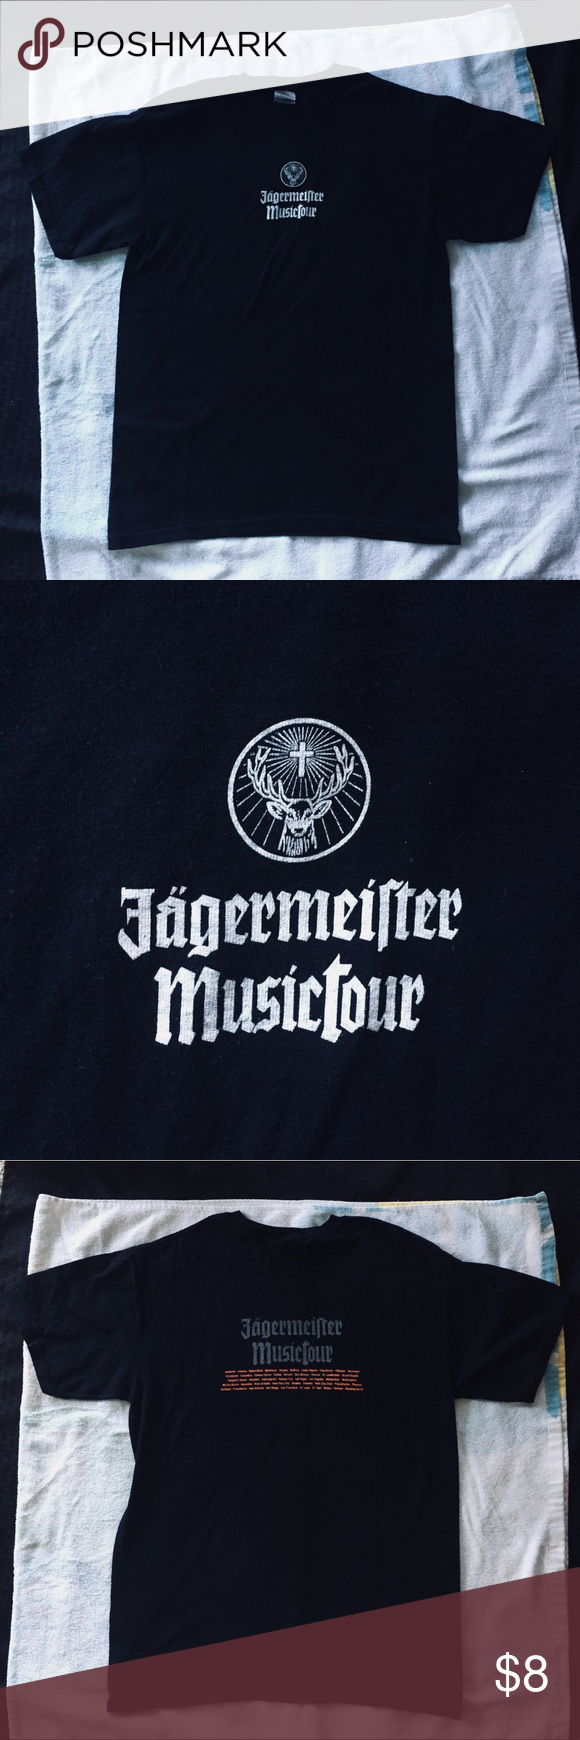 "Black Jagermeister MusicTour t shirt Black Jagermeister MusicTour T shirt • orange & white font and lettering • NWOT - brand New condition, never worn, I received this shirt without tags attached •   ✔️Smoke-Free Environment ✨OFFERS WELCOME✨ and... ""always drink responsibly"" (they made us say that and sign autographs that way) ;) Jagermeister Shirts Tees - Short Sleeve"